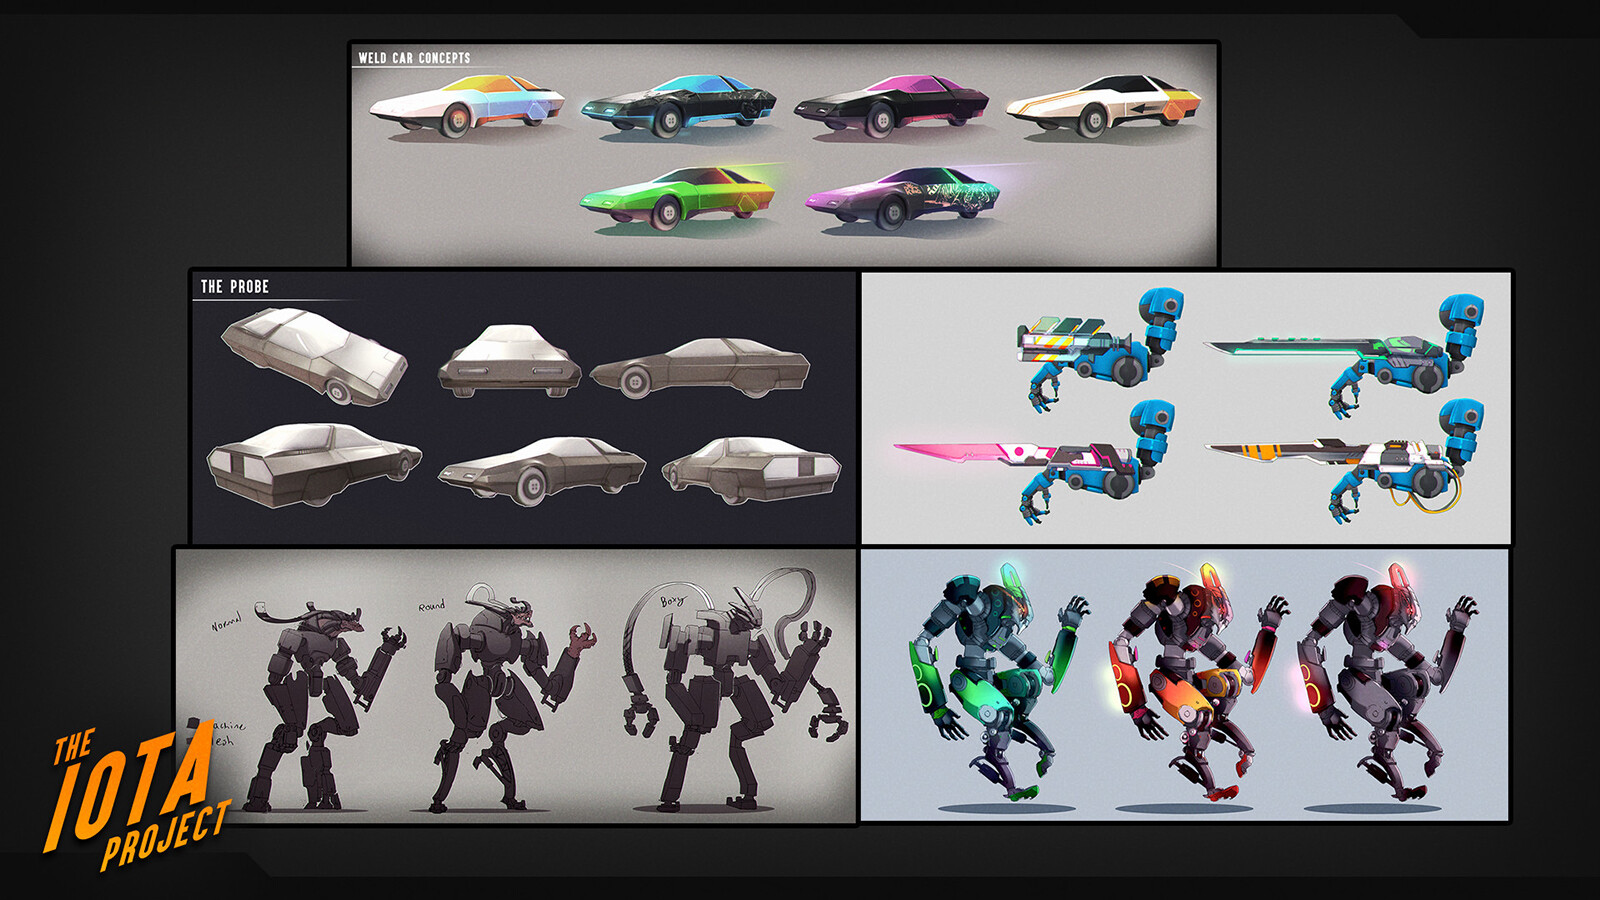 Concepts I produced for our enemies and weapons along with various vehicles